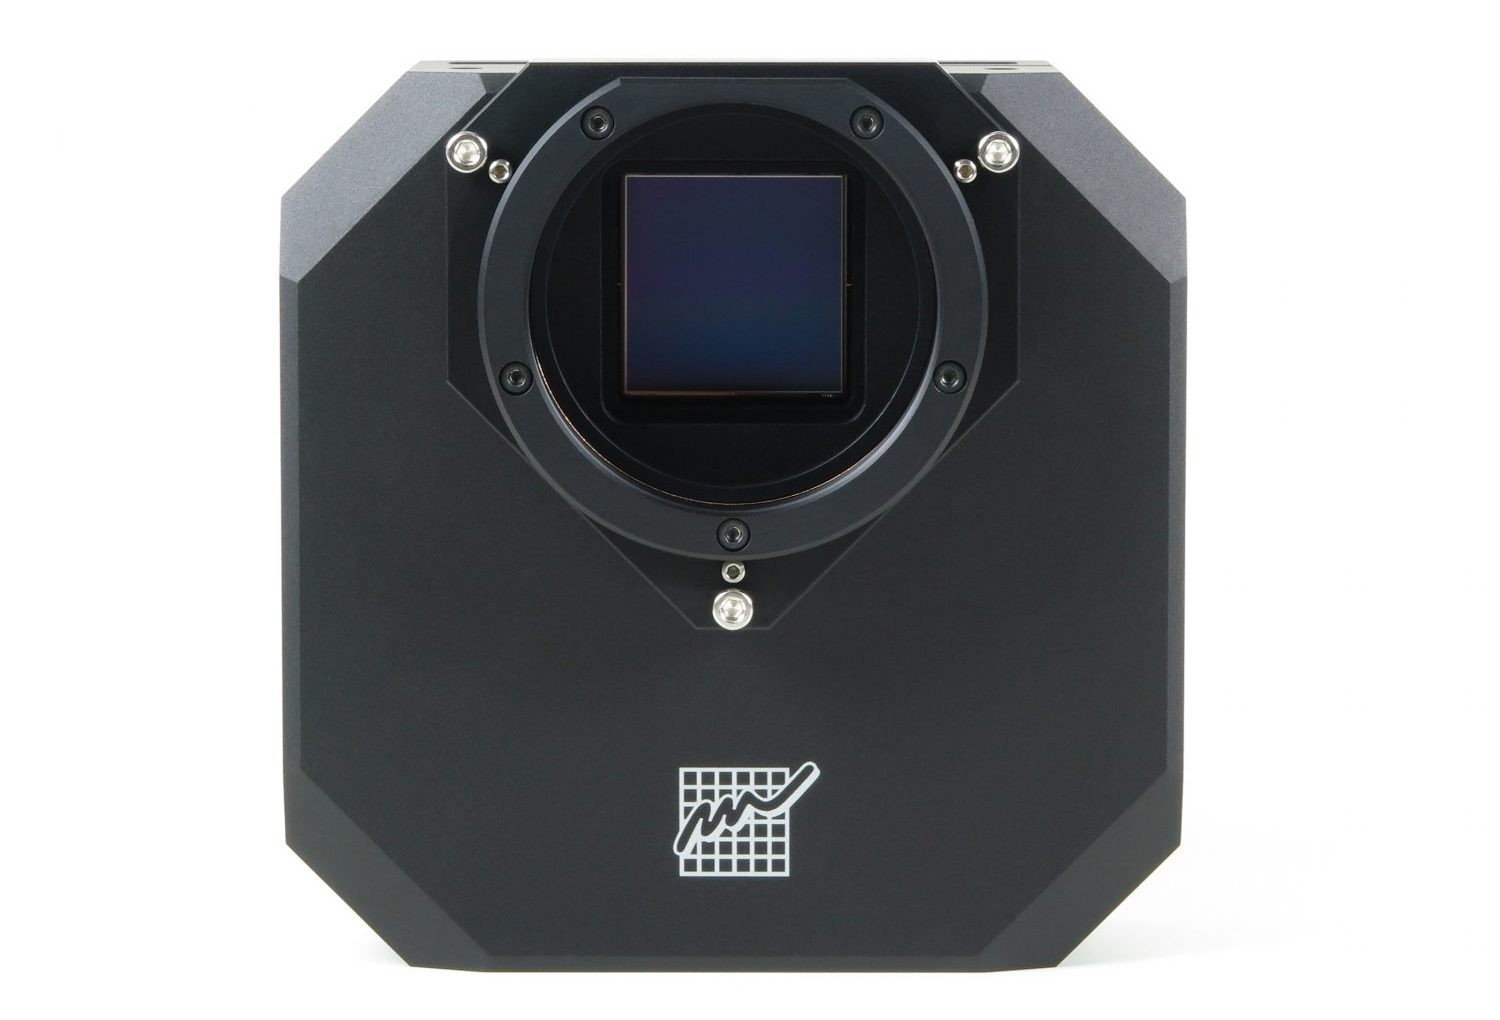 A heater mounted around the sensor window helps regulate the temperature between the cooled CCD chamber and the outside.